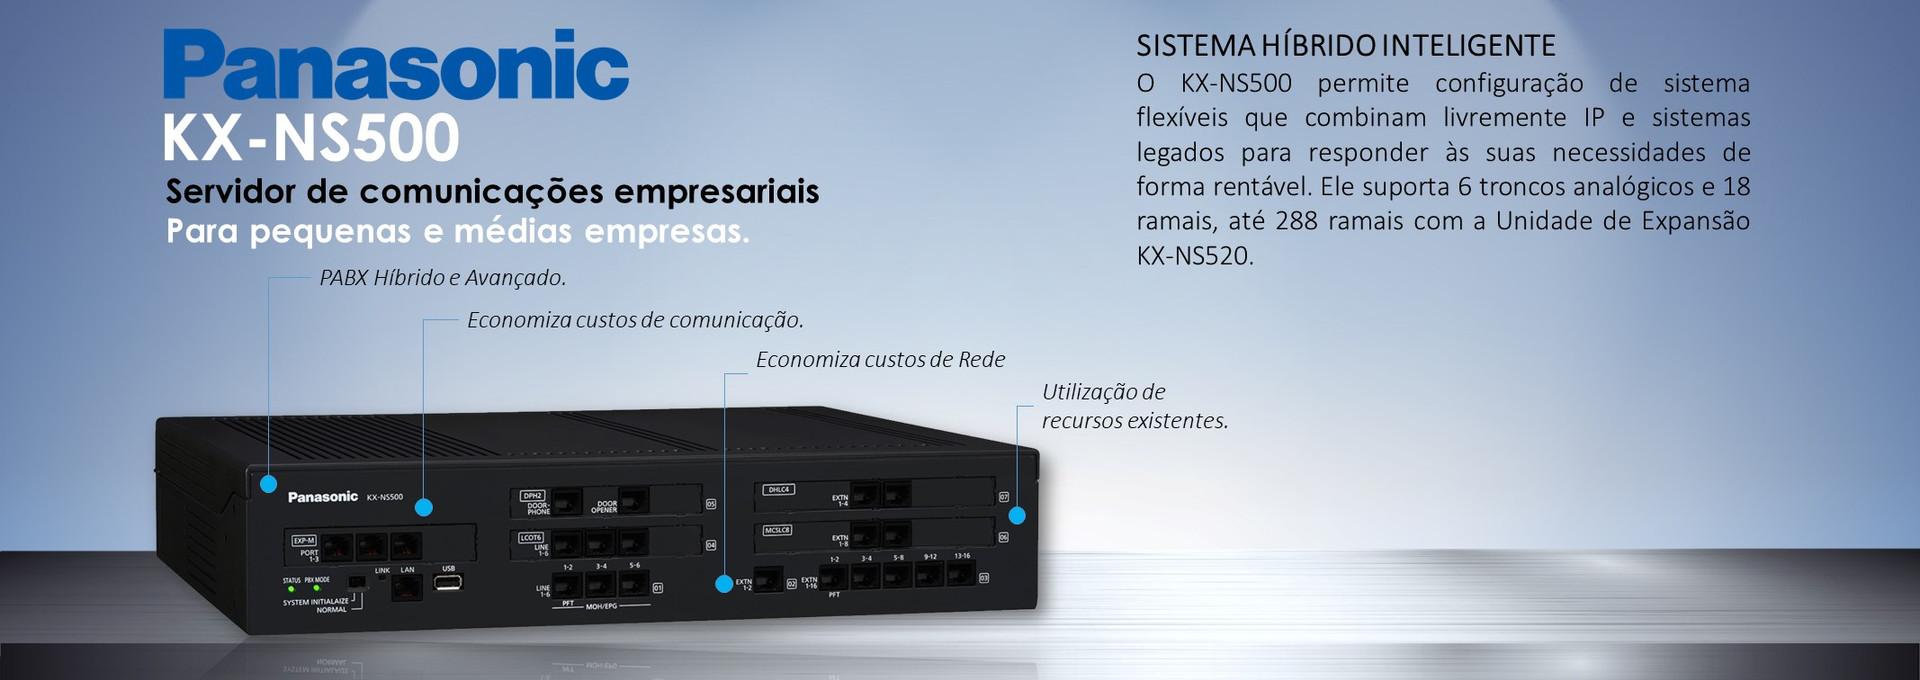 Central IP NS500